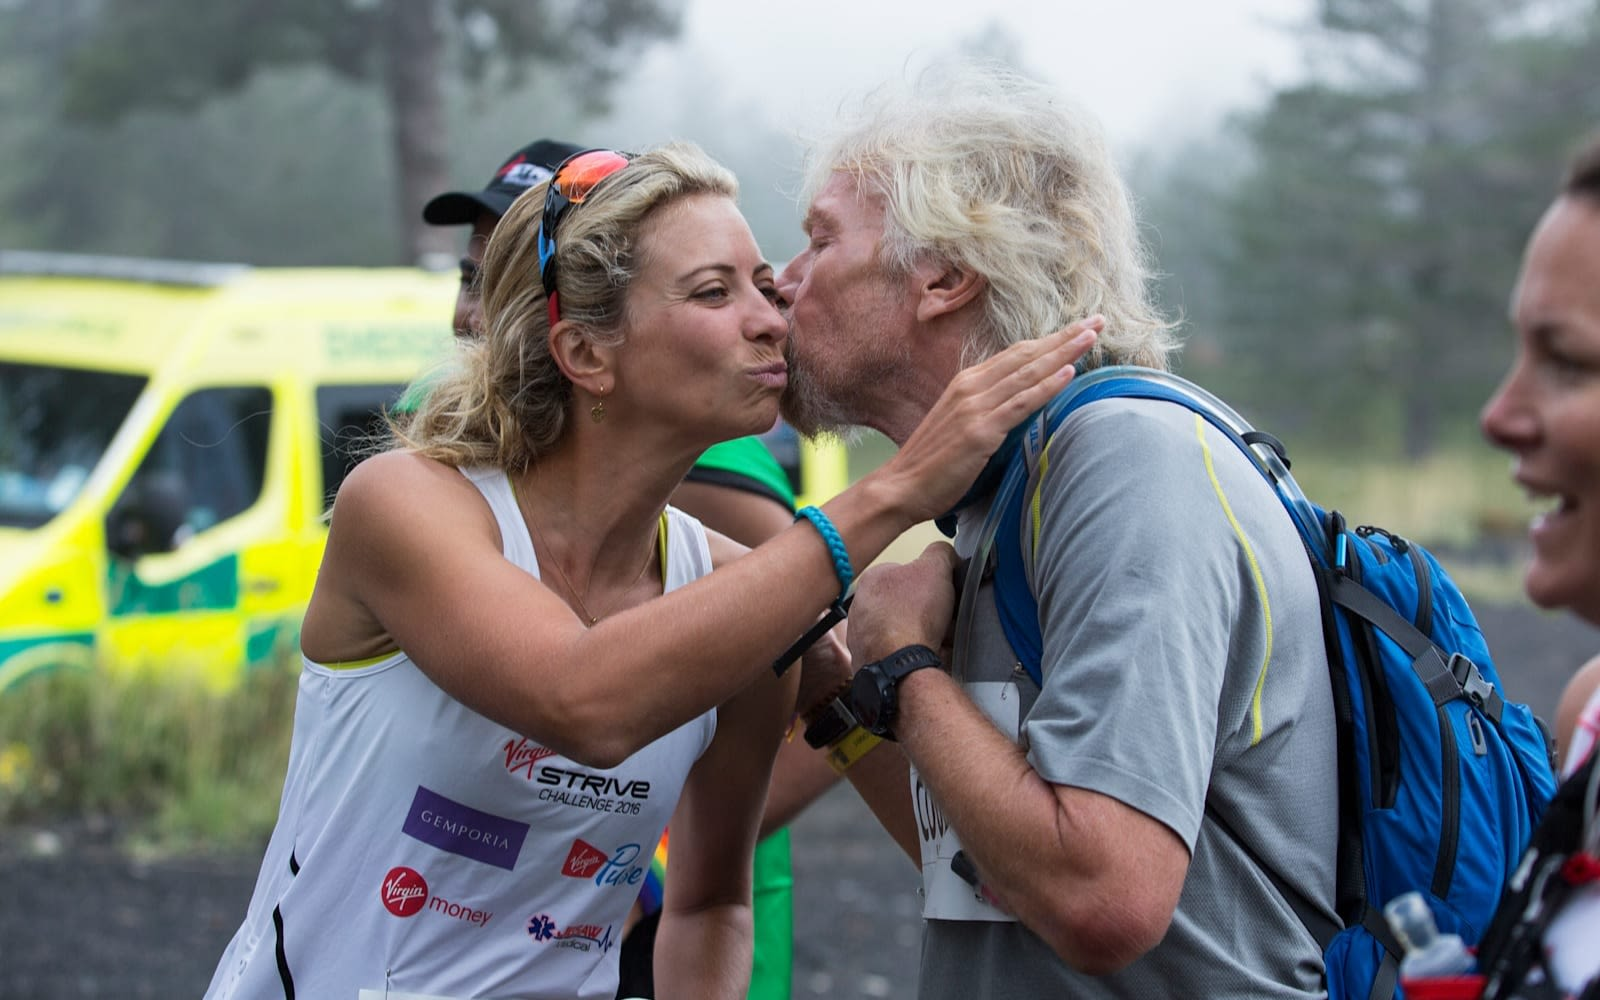 Richard Branson kisses a race participant on the cheek